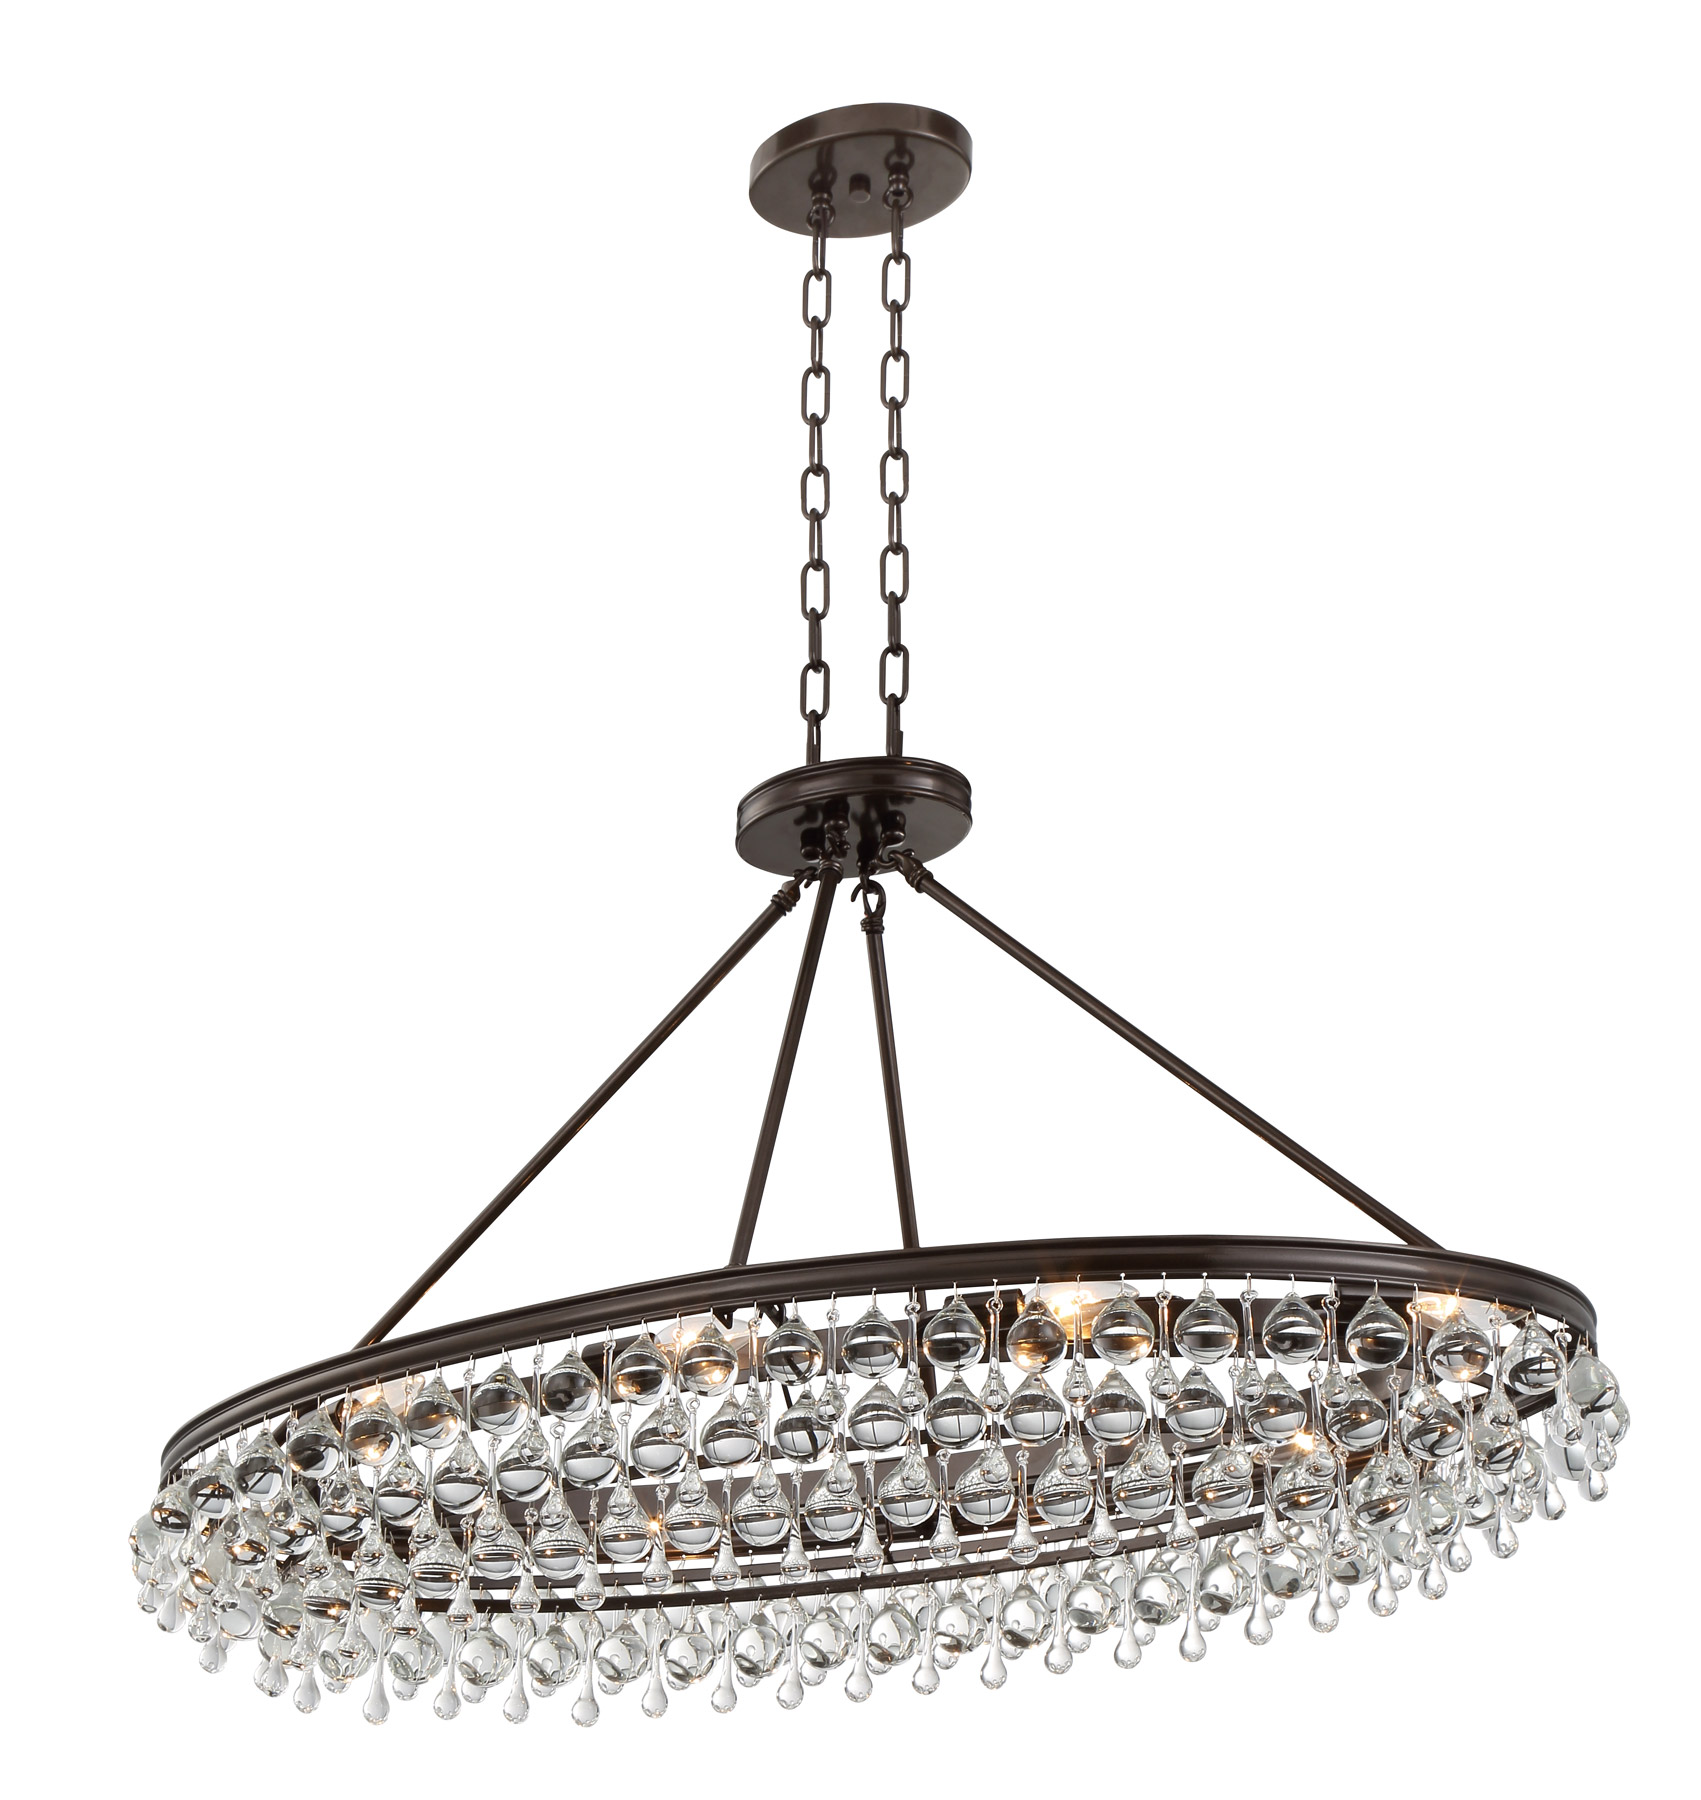 Crystorama VZ Calypso Light Crystal Teardrop Vibrant Bronze - Chandelier crystals teardrop